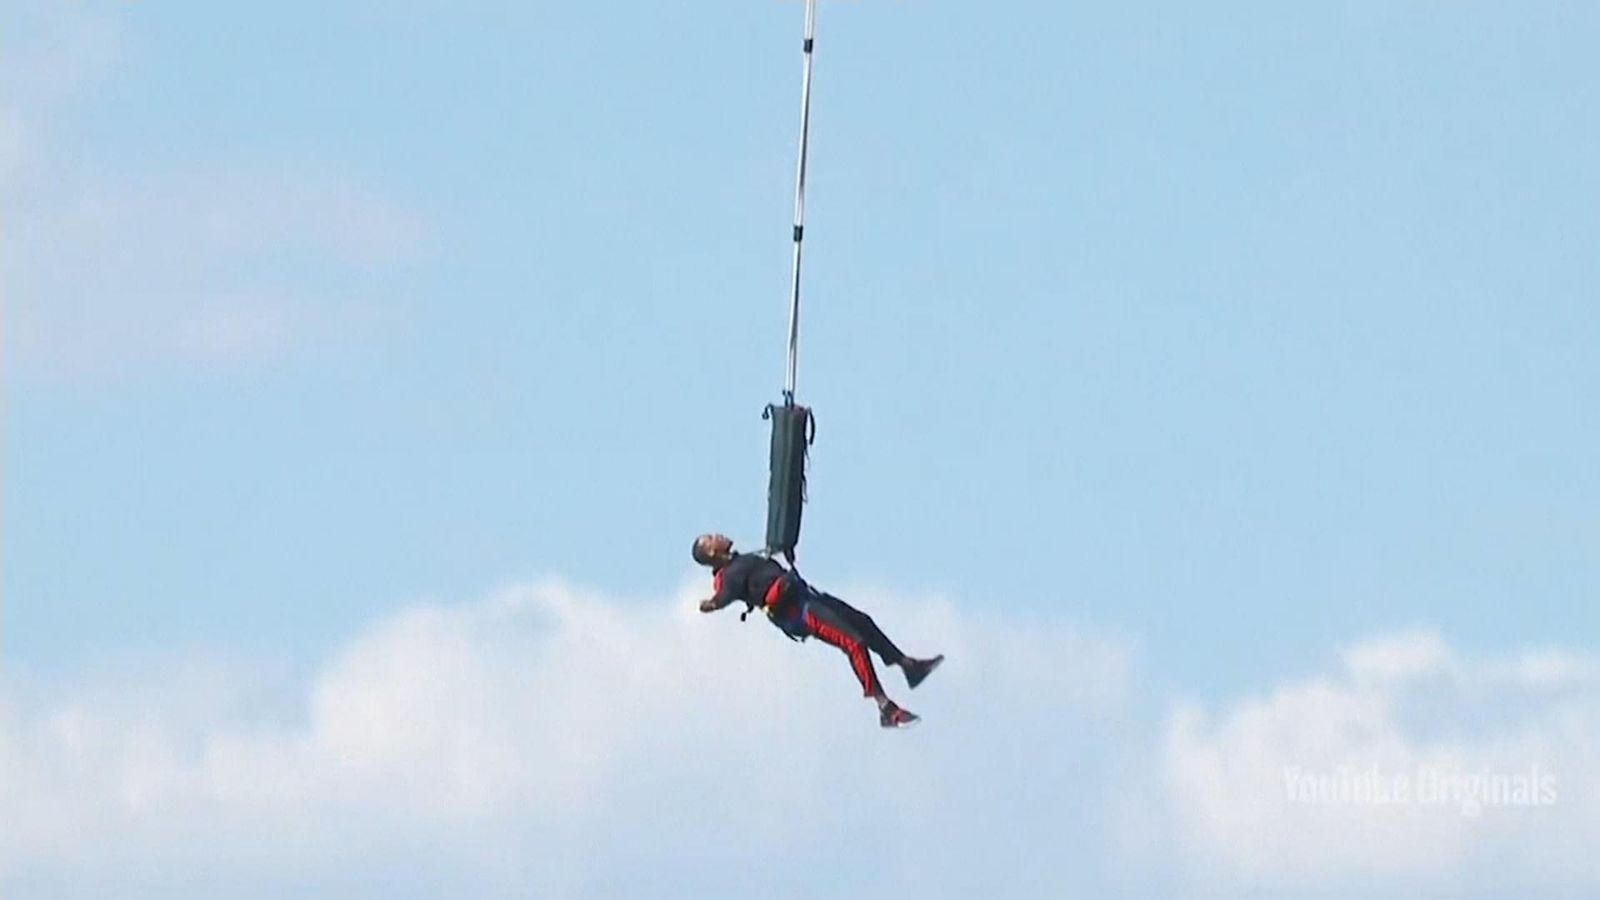 Will Smith celebrates 50th birthday with daring bungee jump out of helicopter